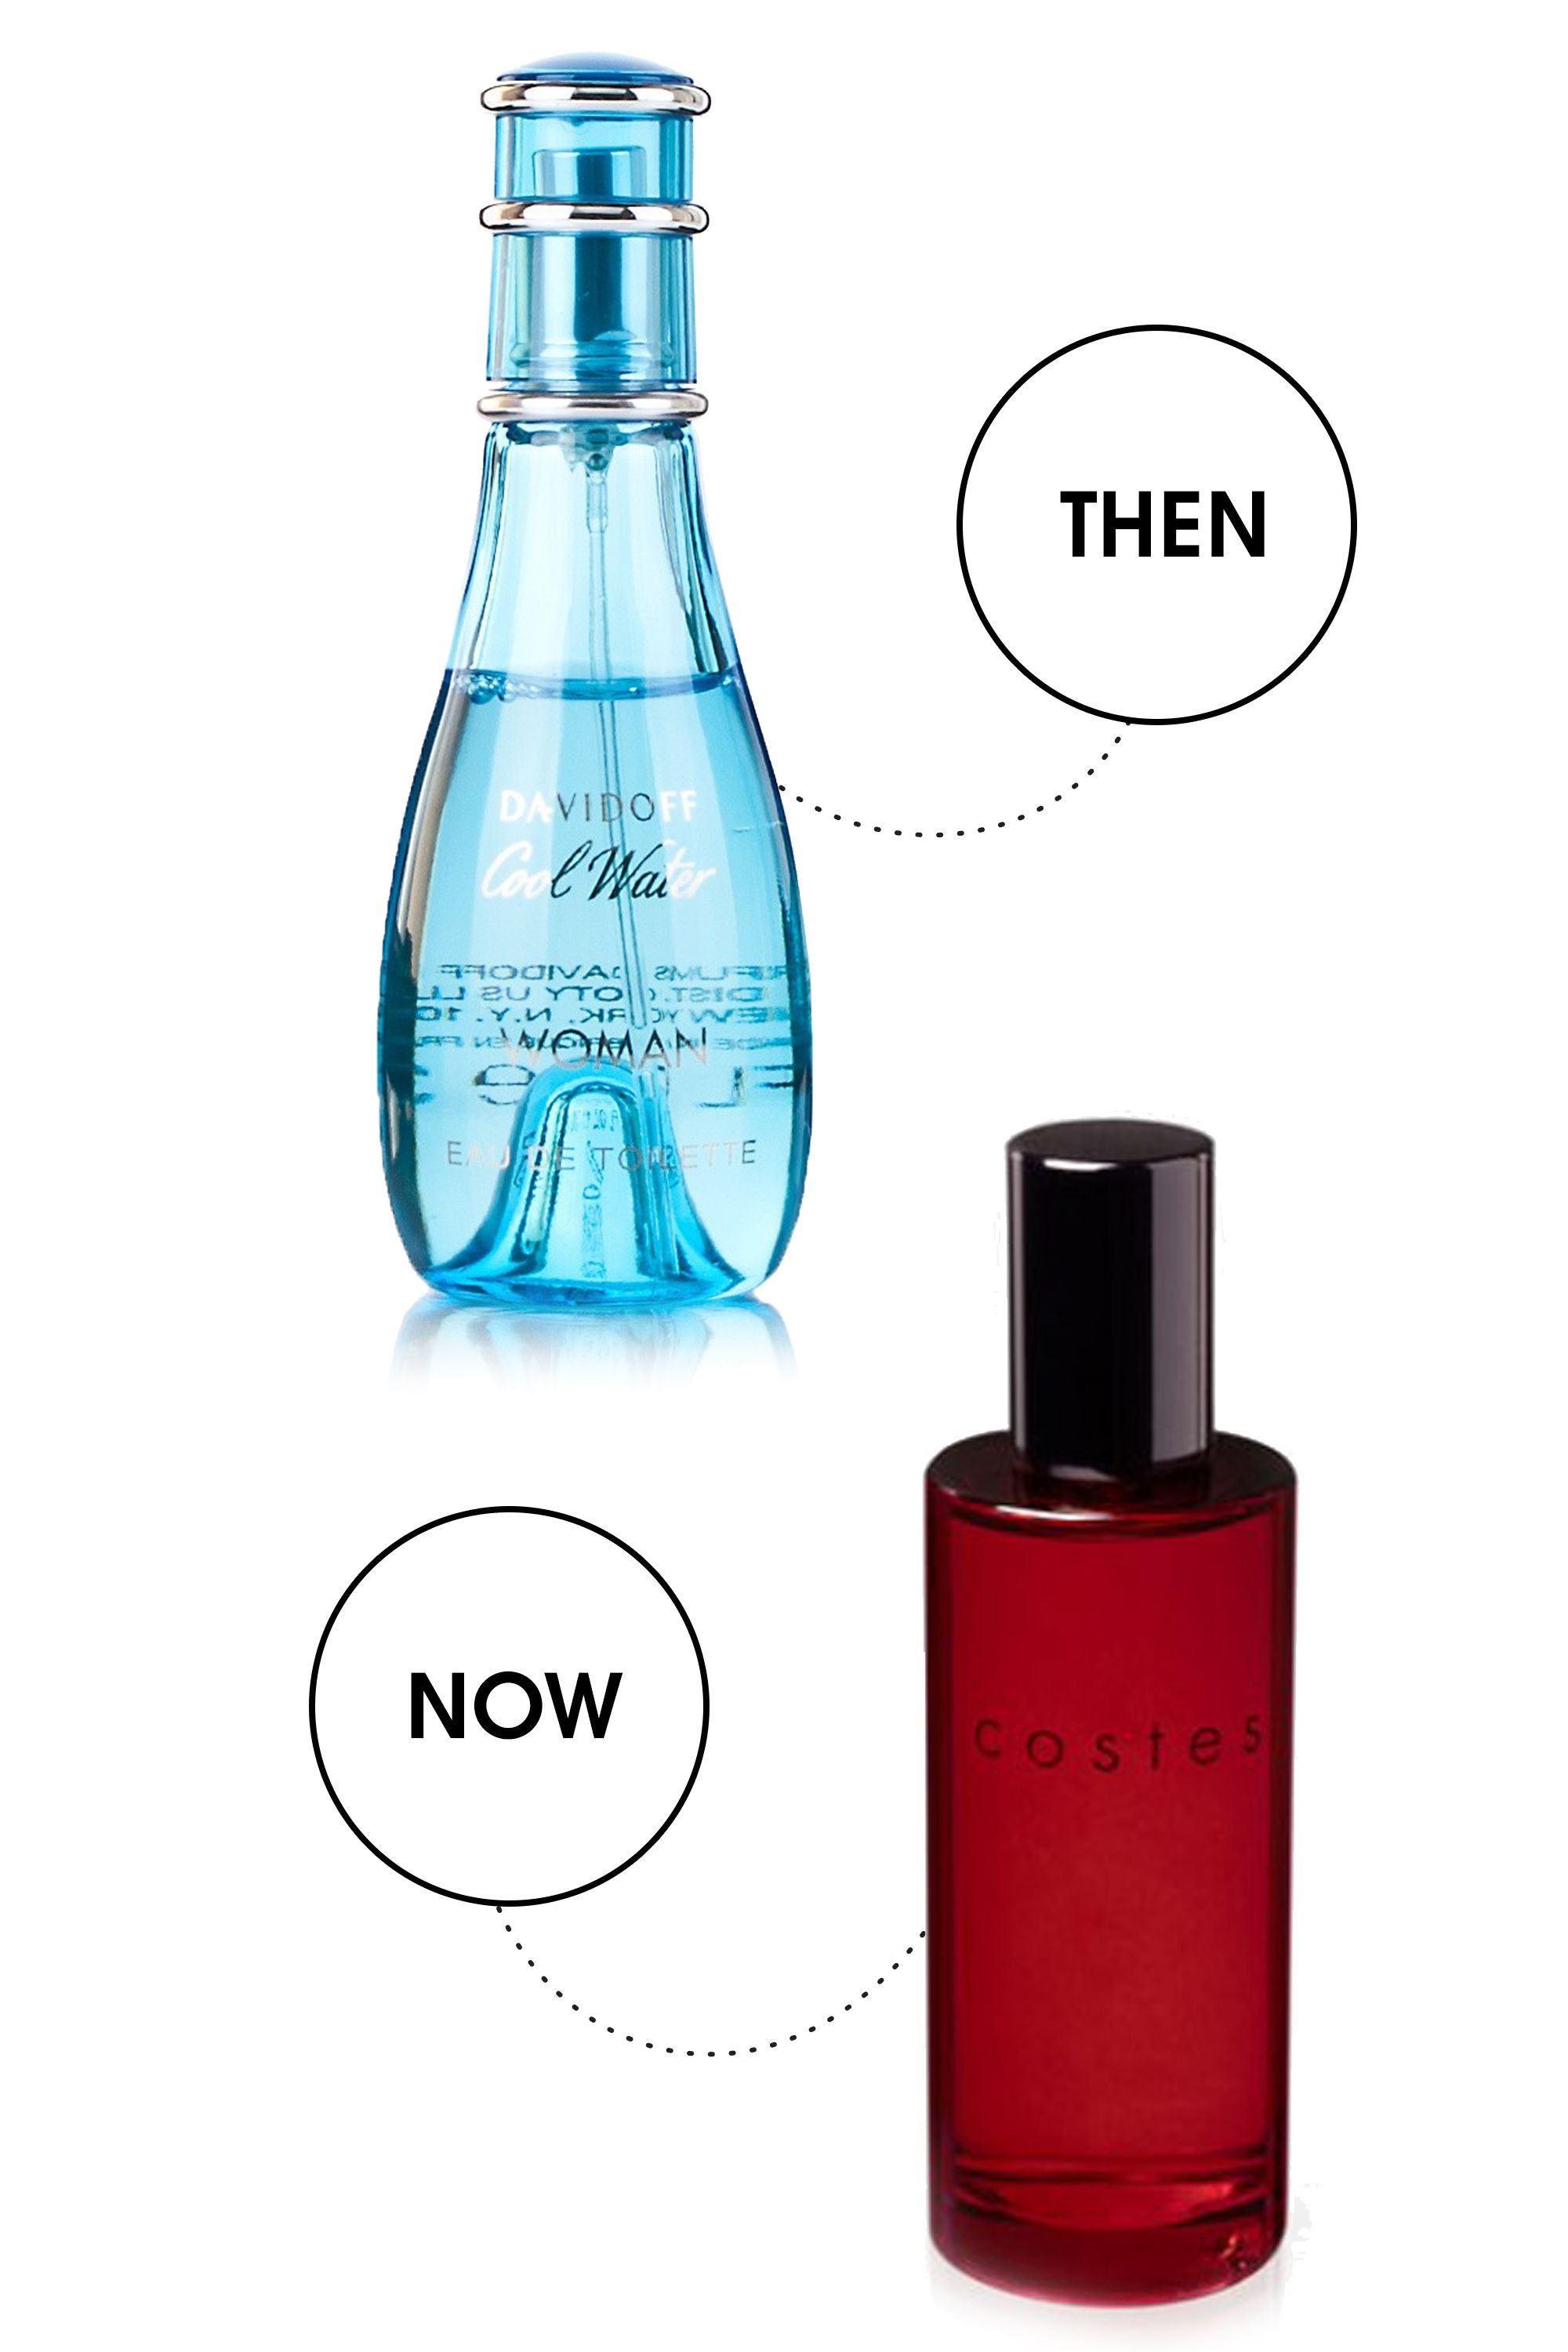 """<strong>Then: </strong>Davidoff Cool Water Woman, $26; <a target=""""_blank"""" href=""""http://www.drugstore.com/products/prod.asp?pid=413779&catid=183369&aid=338666&aparam=413779&kpid=413779&CAWELAID=120142990000047630&CAGPSPN=pla&kpid=413779"""">drugstore.com</a>  """"I loved Davidoff Cool Water because my best friend wore it and she always got the cutest, older boys. In my head it was practically the lady version of <a href=""""http://m0.joe.ie/wp-content/uploads/2015/04/10152553/Fantana.gif"""">Sex Panther</a>. Nevermind that they made Cool Water for men.""""  <strong>Now: </strong>Hôtel Costes Original Fragrance, $79; <a target=""""_blank"""" href=""""http://www.bigelowchemists.com/hotel-costes-original-fragrance-eau-de-toilette.html"""">bigelowchemists.com</a>  <strong>""""</strong>I wear a few drops of this on pressure points to take me back to the most romantic Valentine's Day ever."""""""